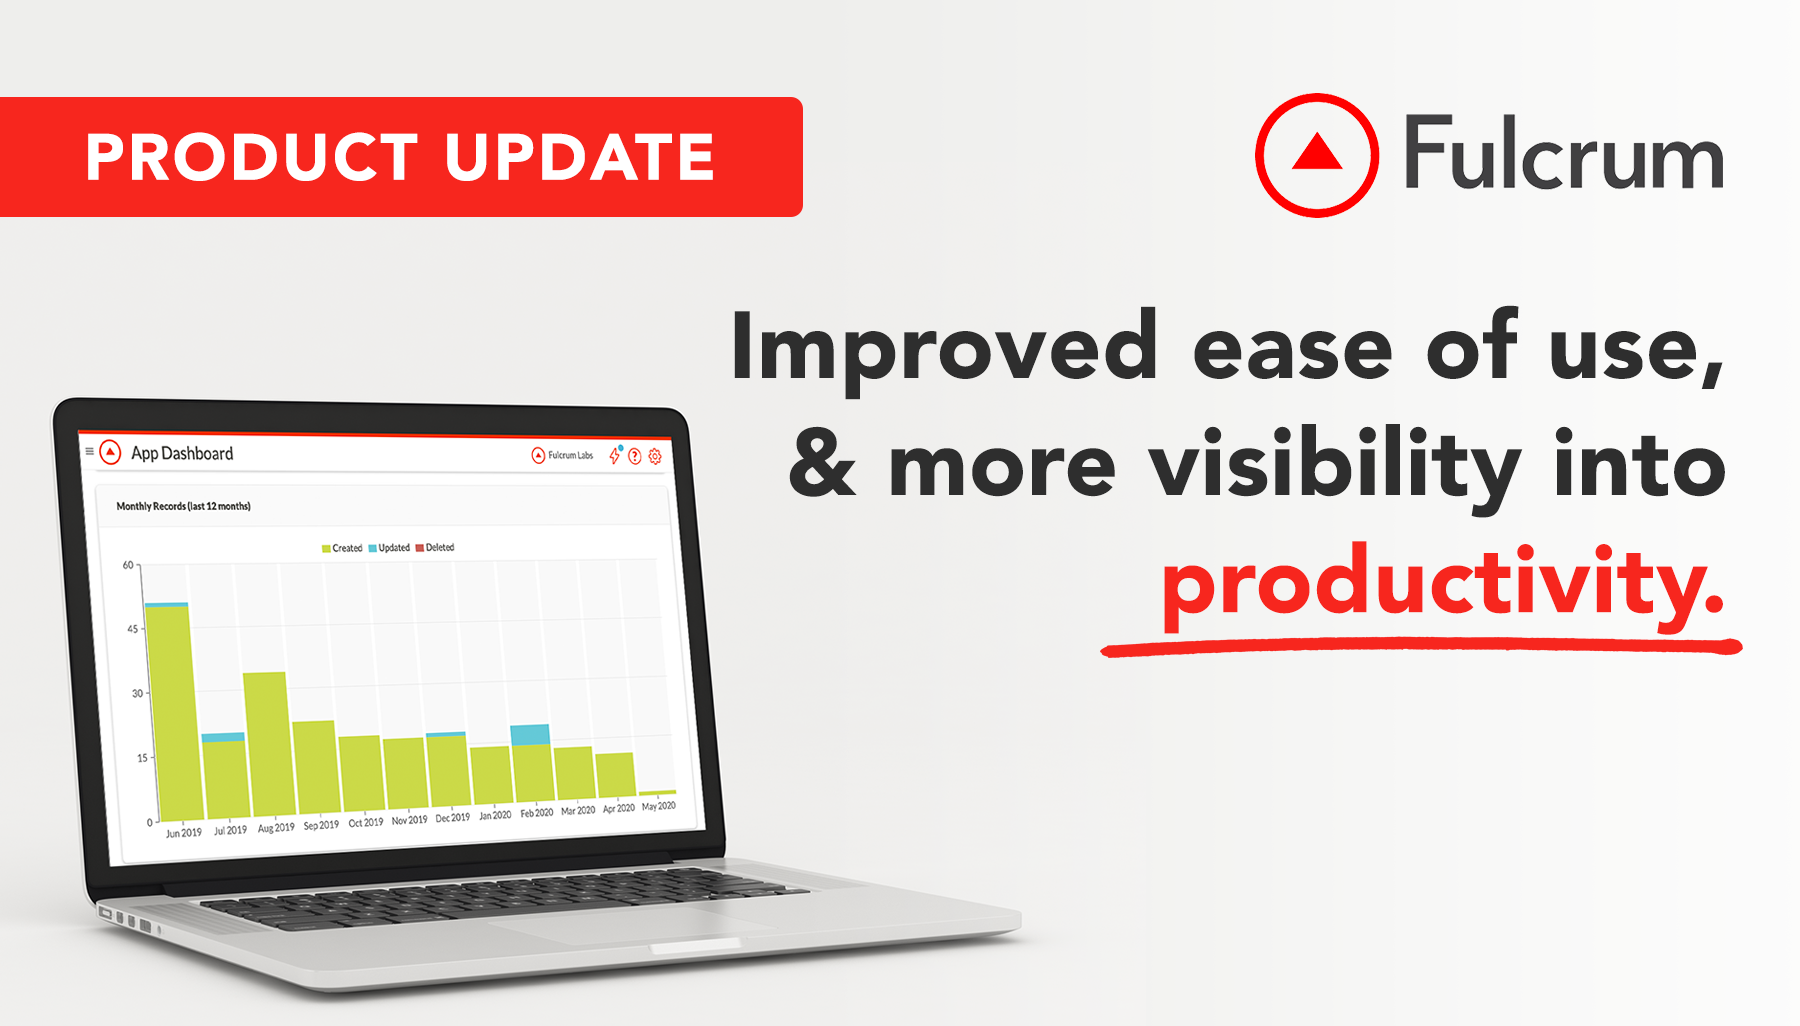 Fulcrum Product Update: Improved ease of use, more visibility into workforce productivity